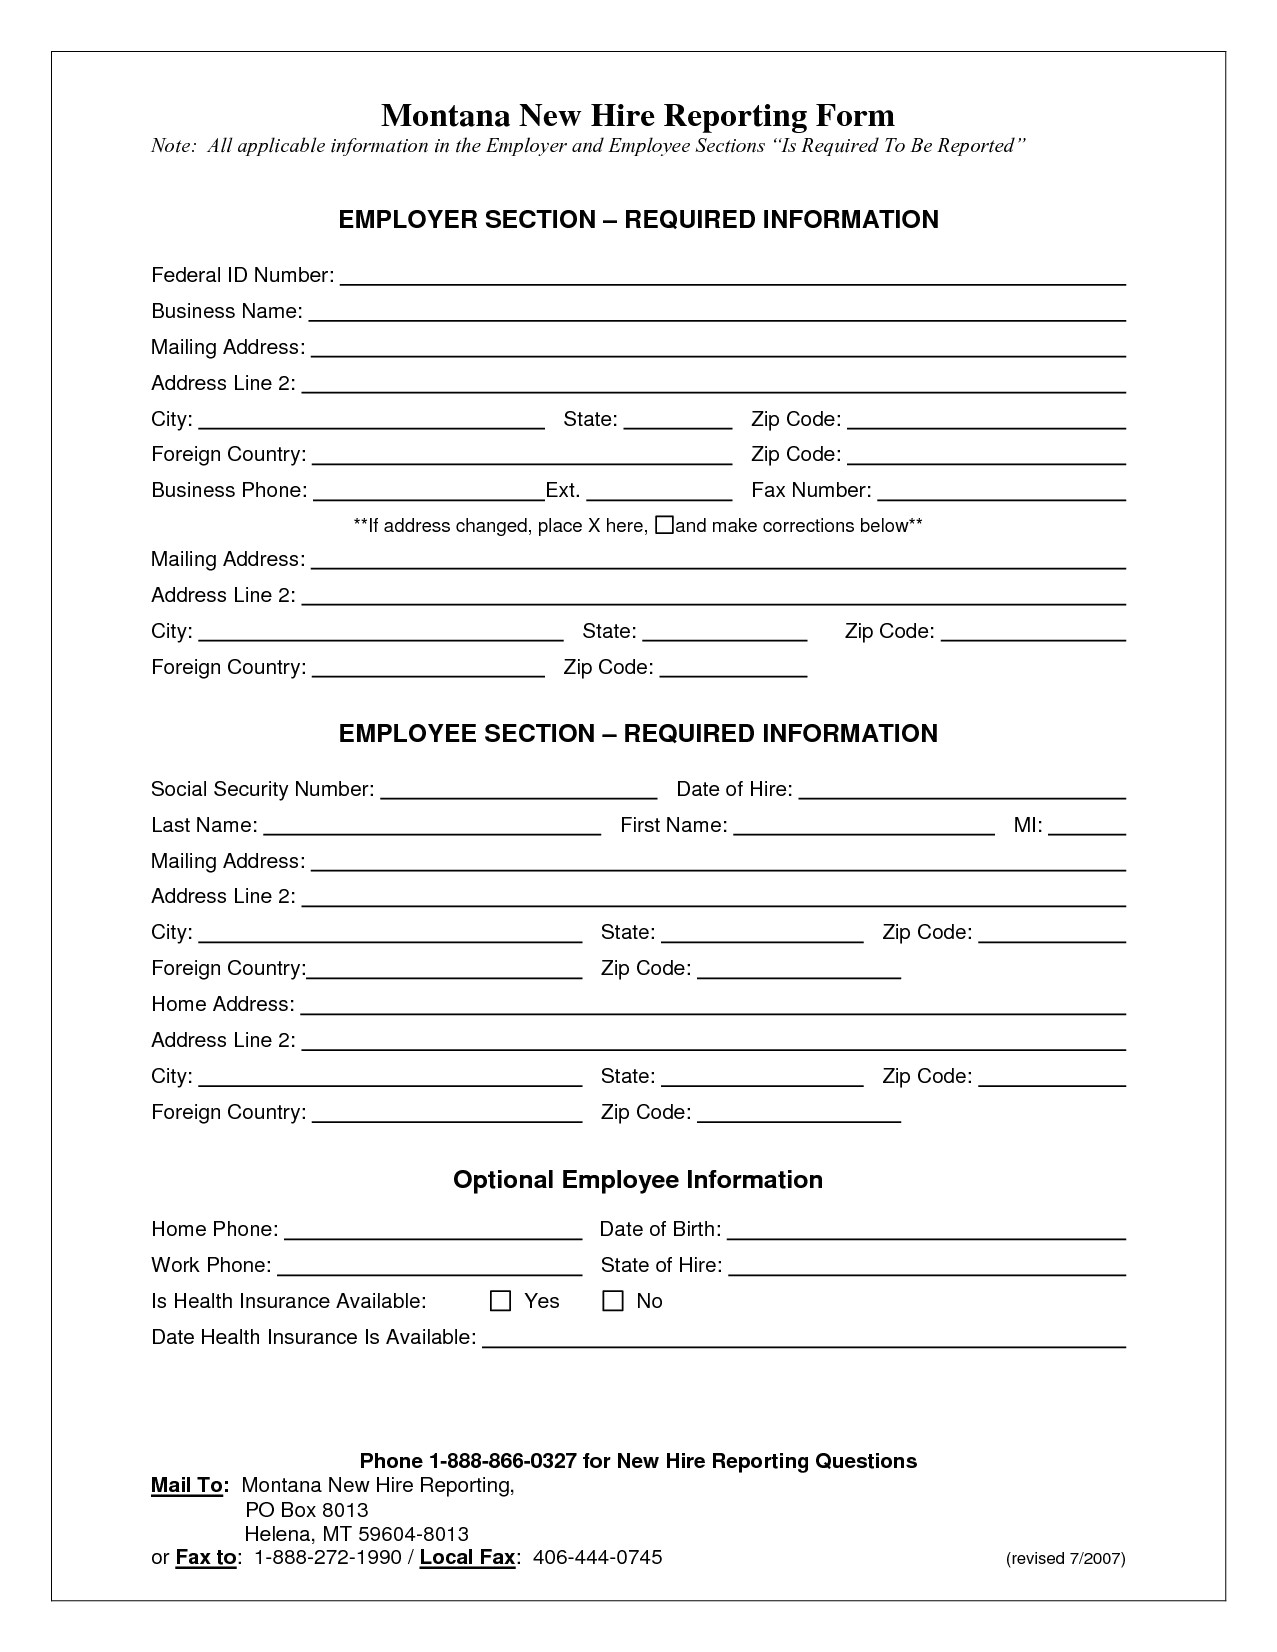 6 new hire application form template